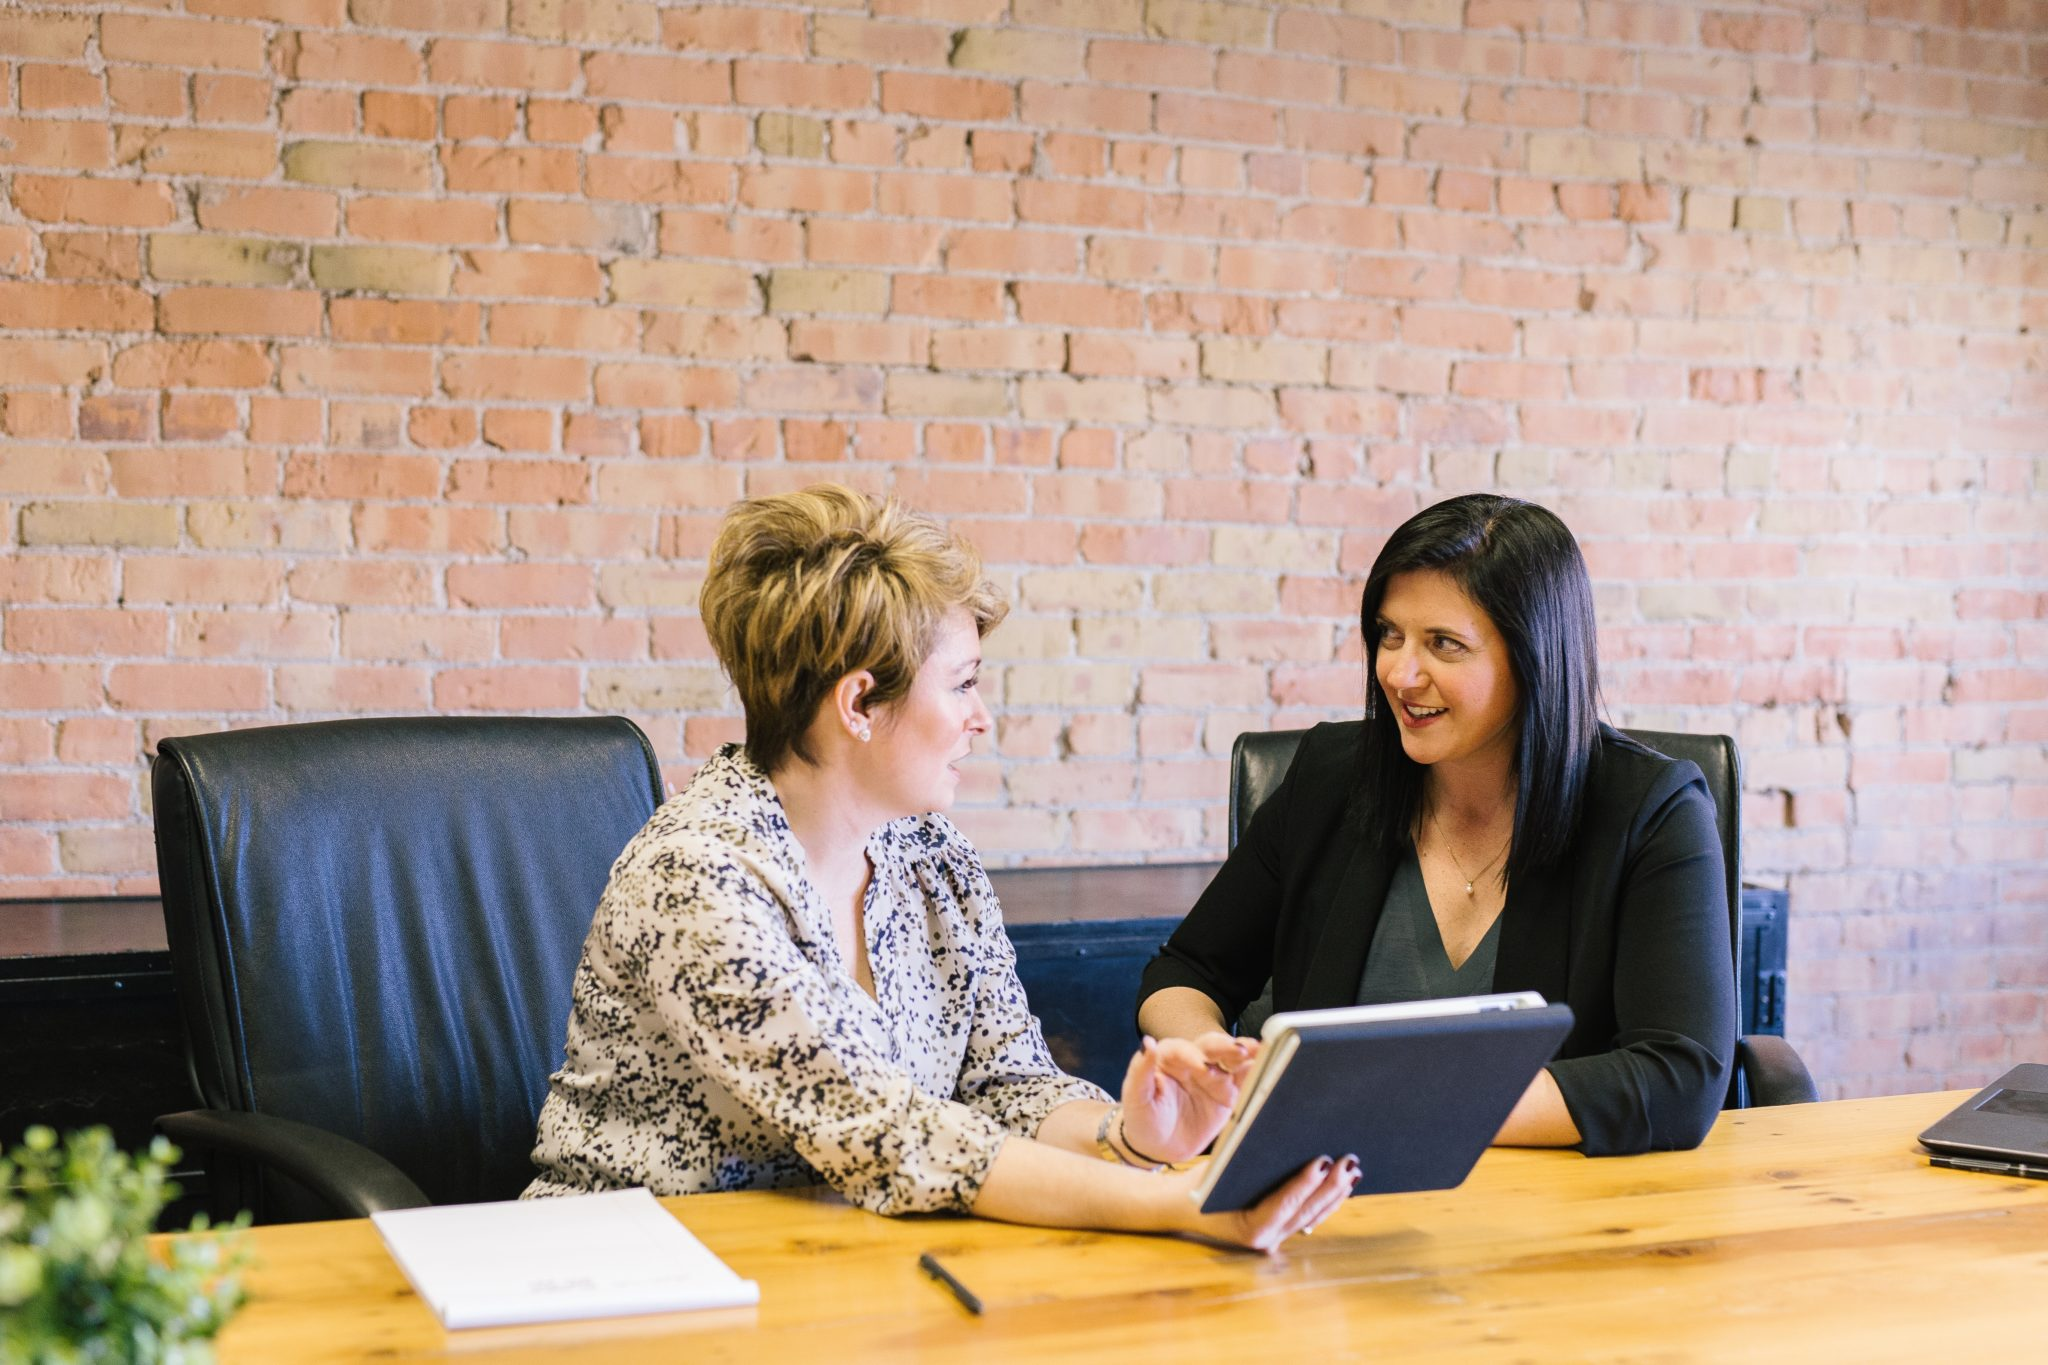 Check out these three reasons why you should hire a business advisor for your small business.